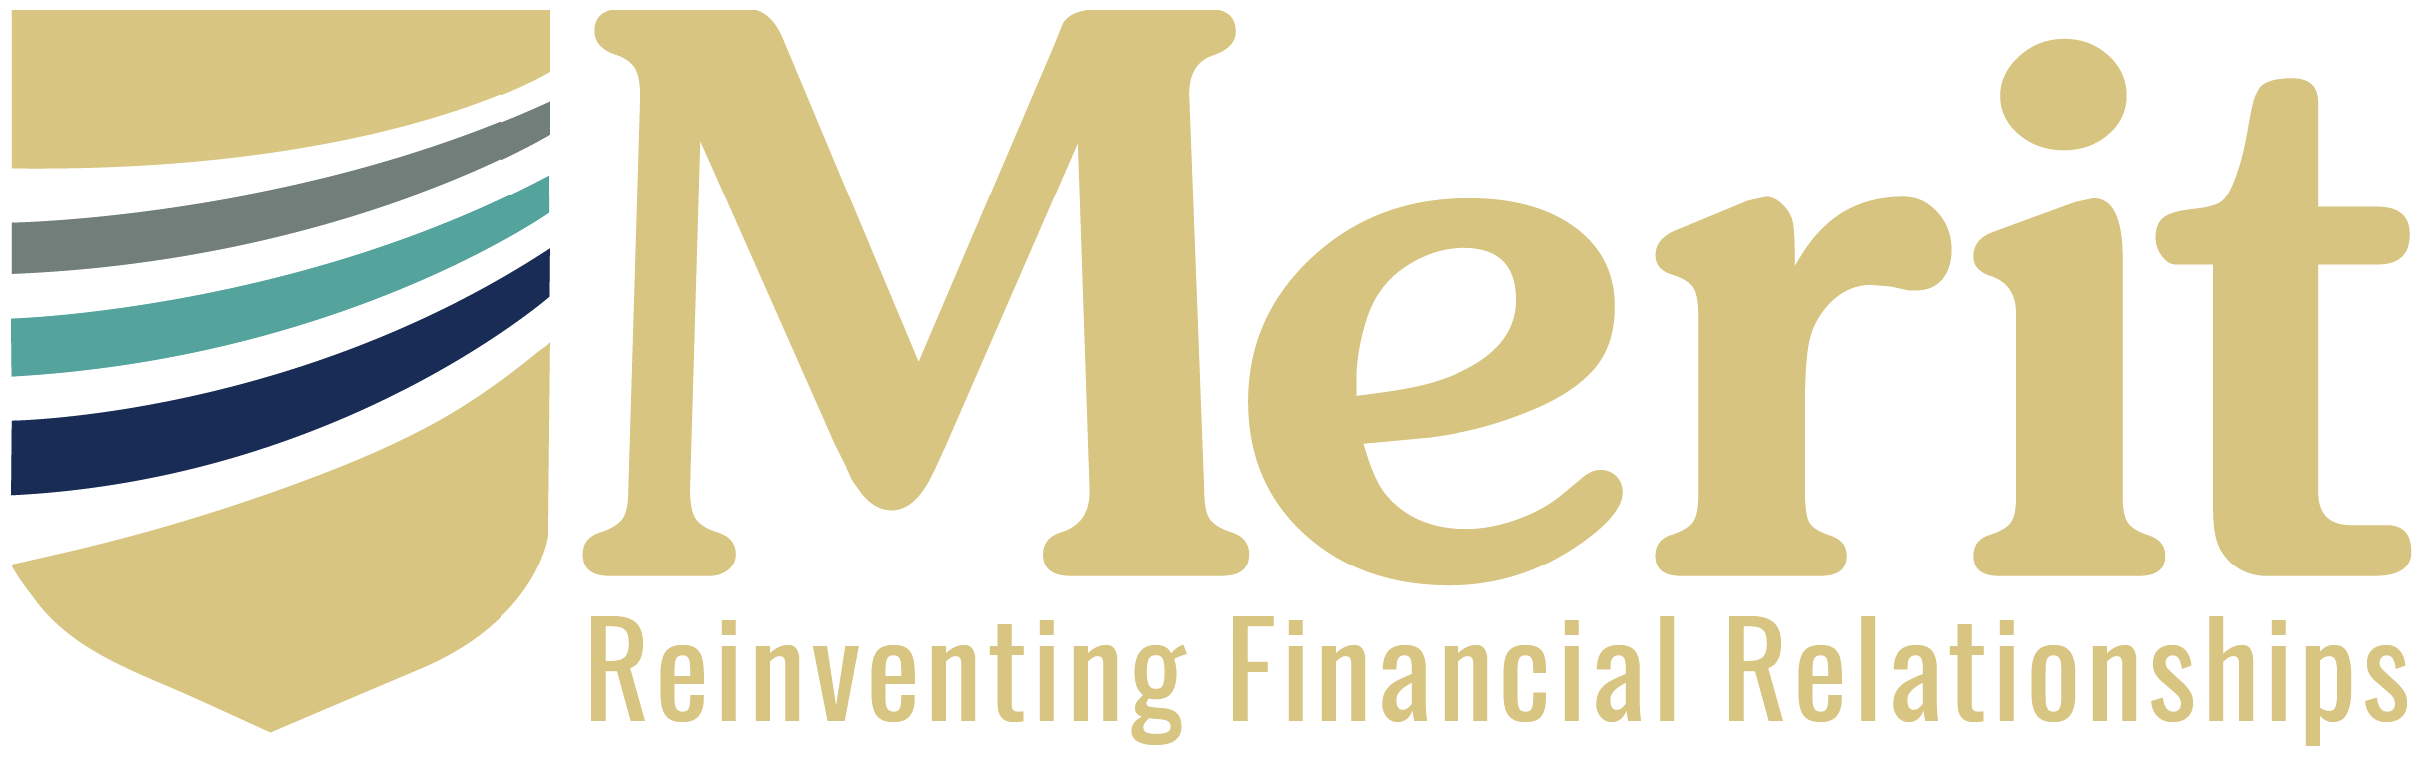 Merit Financial Sponsor